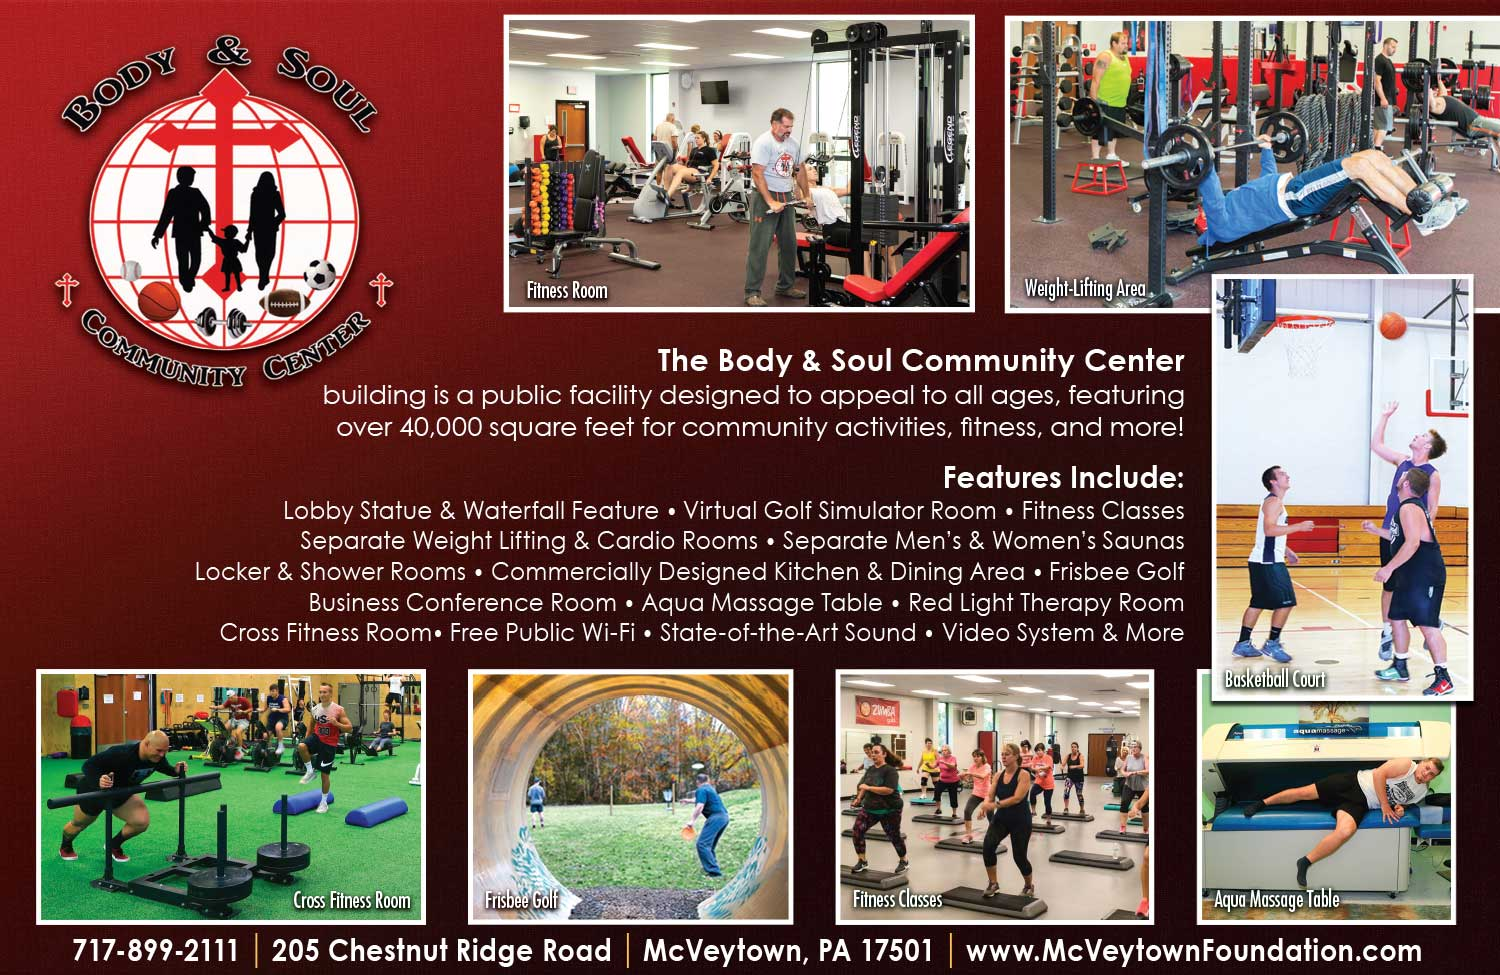 "<center>Body & Soul Community Center | <b><a href=""http://mcveytownfoundation.com"" target=""_blank"" rel=""noopener noreferrer"">CLICK HERE to view the website</a></b></center>"